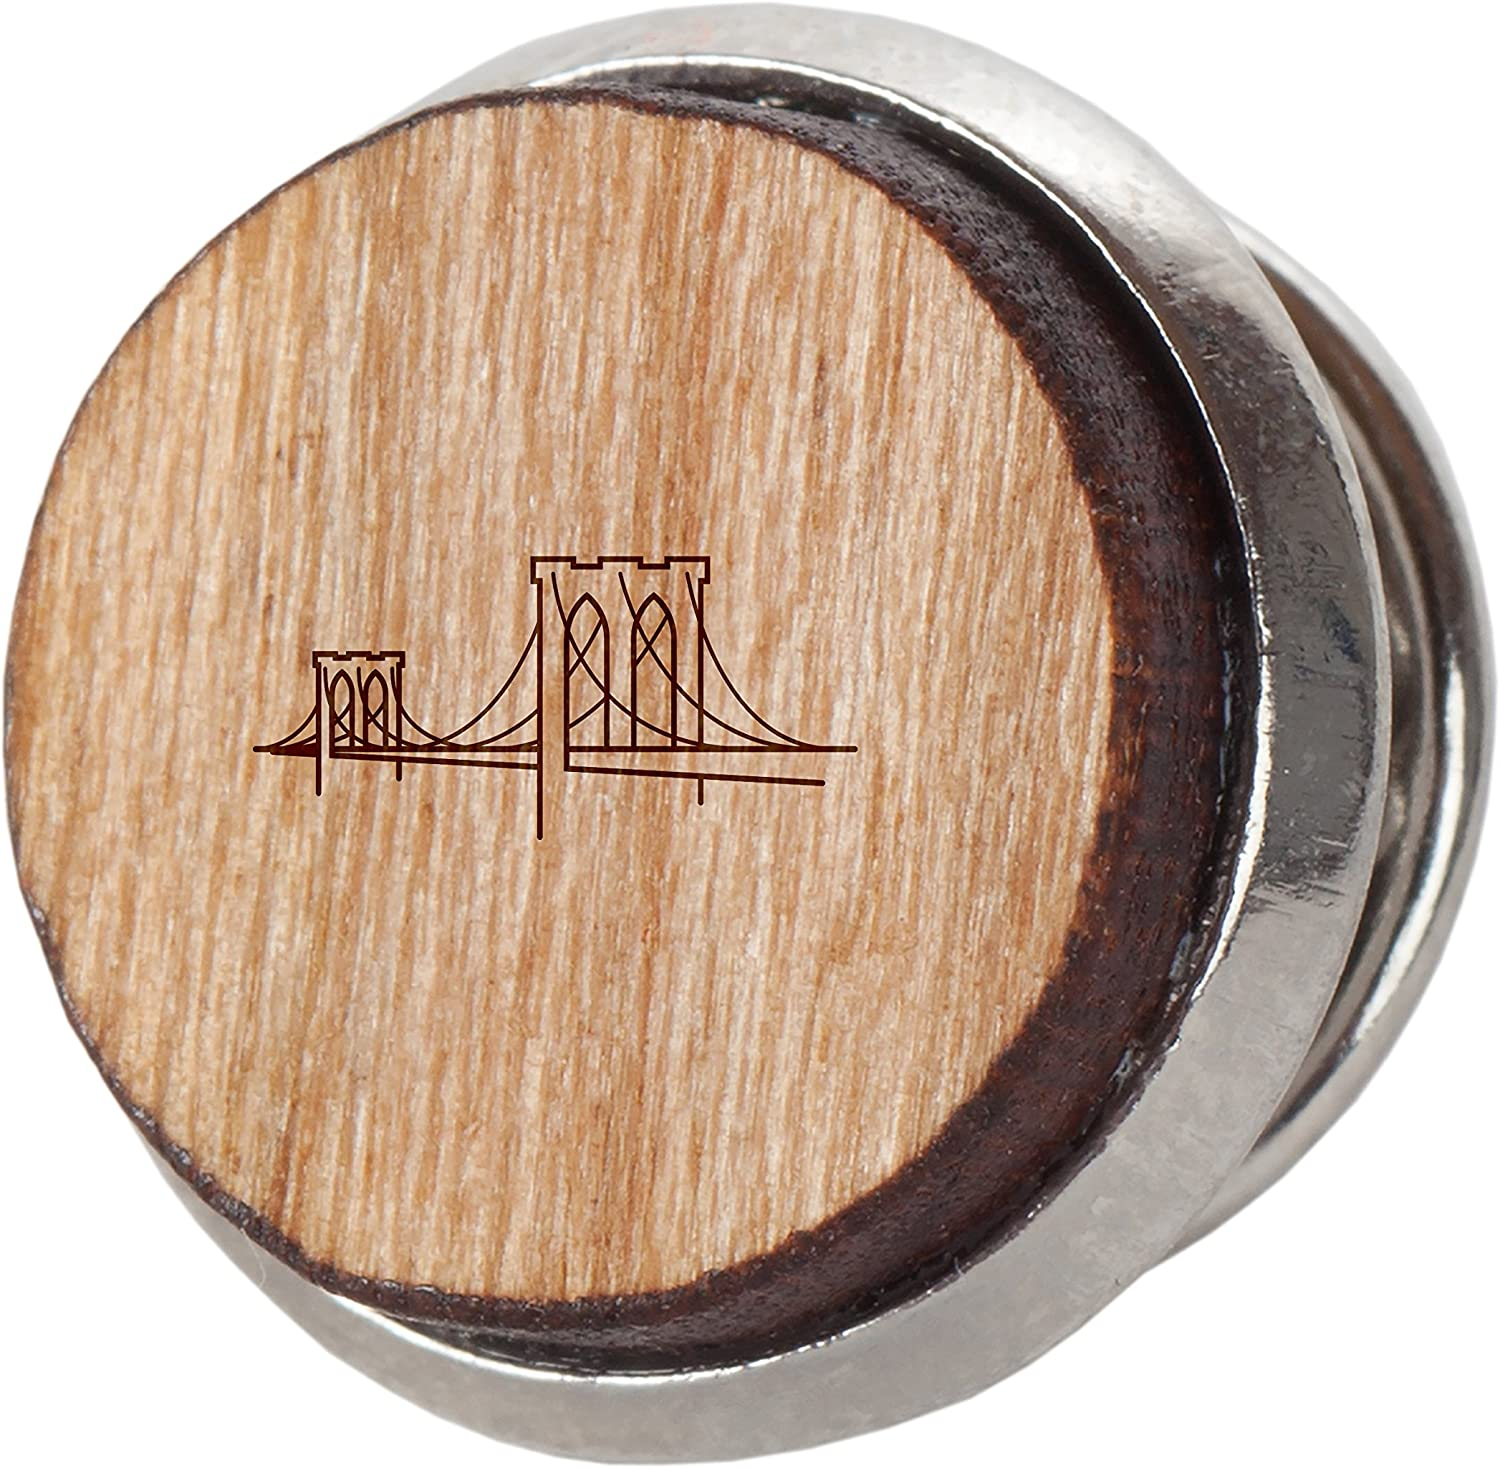 Brooklyn Bridge Stylish Cherry Wood Tie Tack- 12Mm Simple Tie Clip with Laser Engraved Design - Engraved Tie Tack Gift